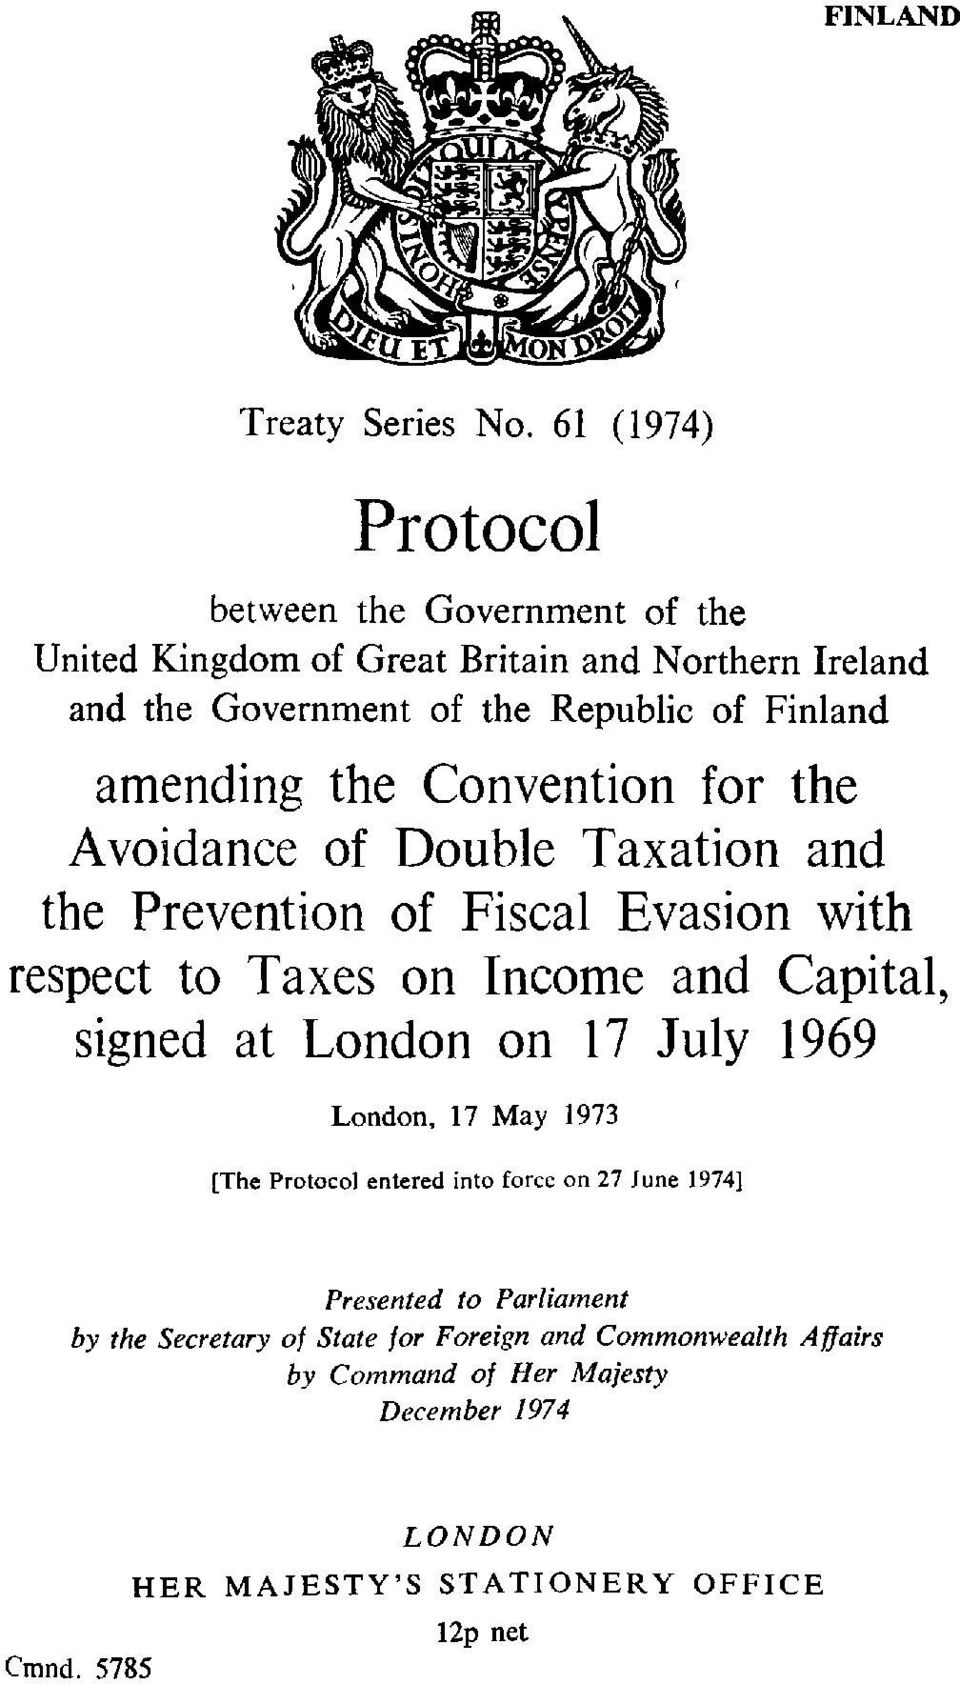 amending the Convention for the Avoidance of Double Taxation and the Prevention of Fiscal Evasion with respect to Taxes on Income and Capital, signed